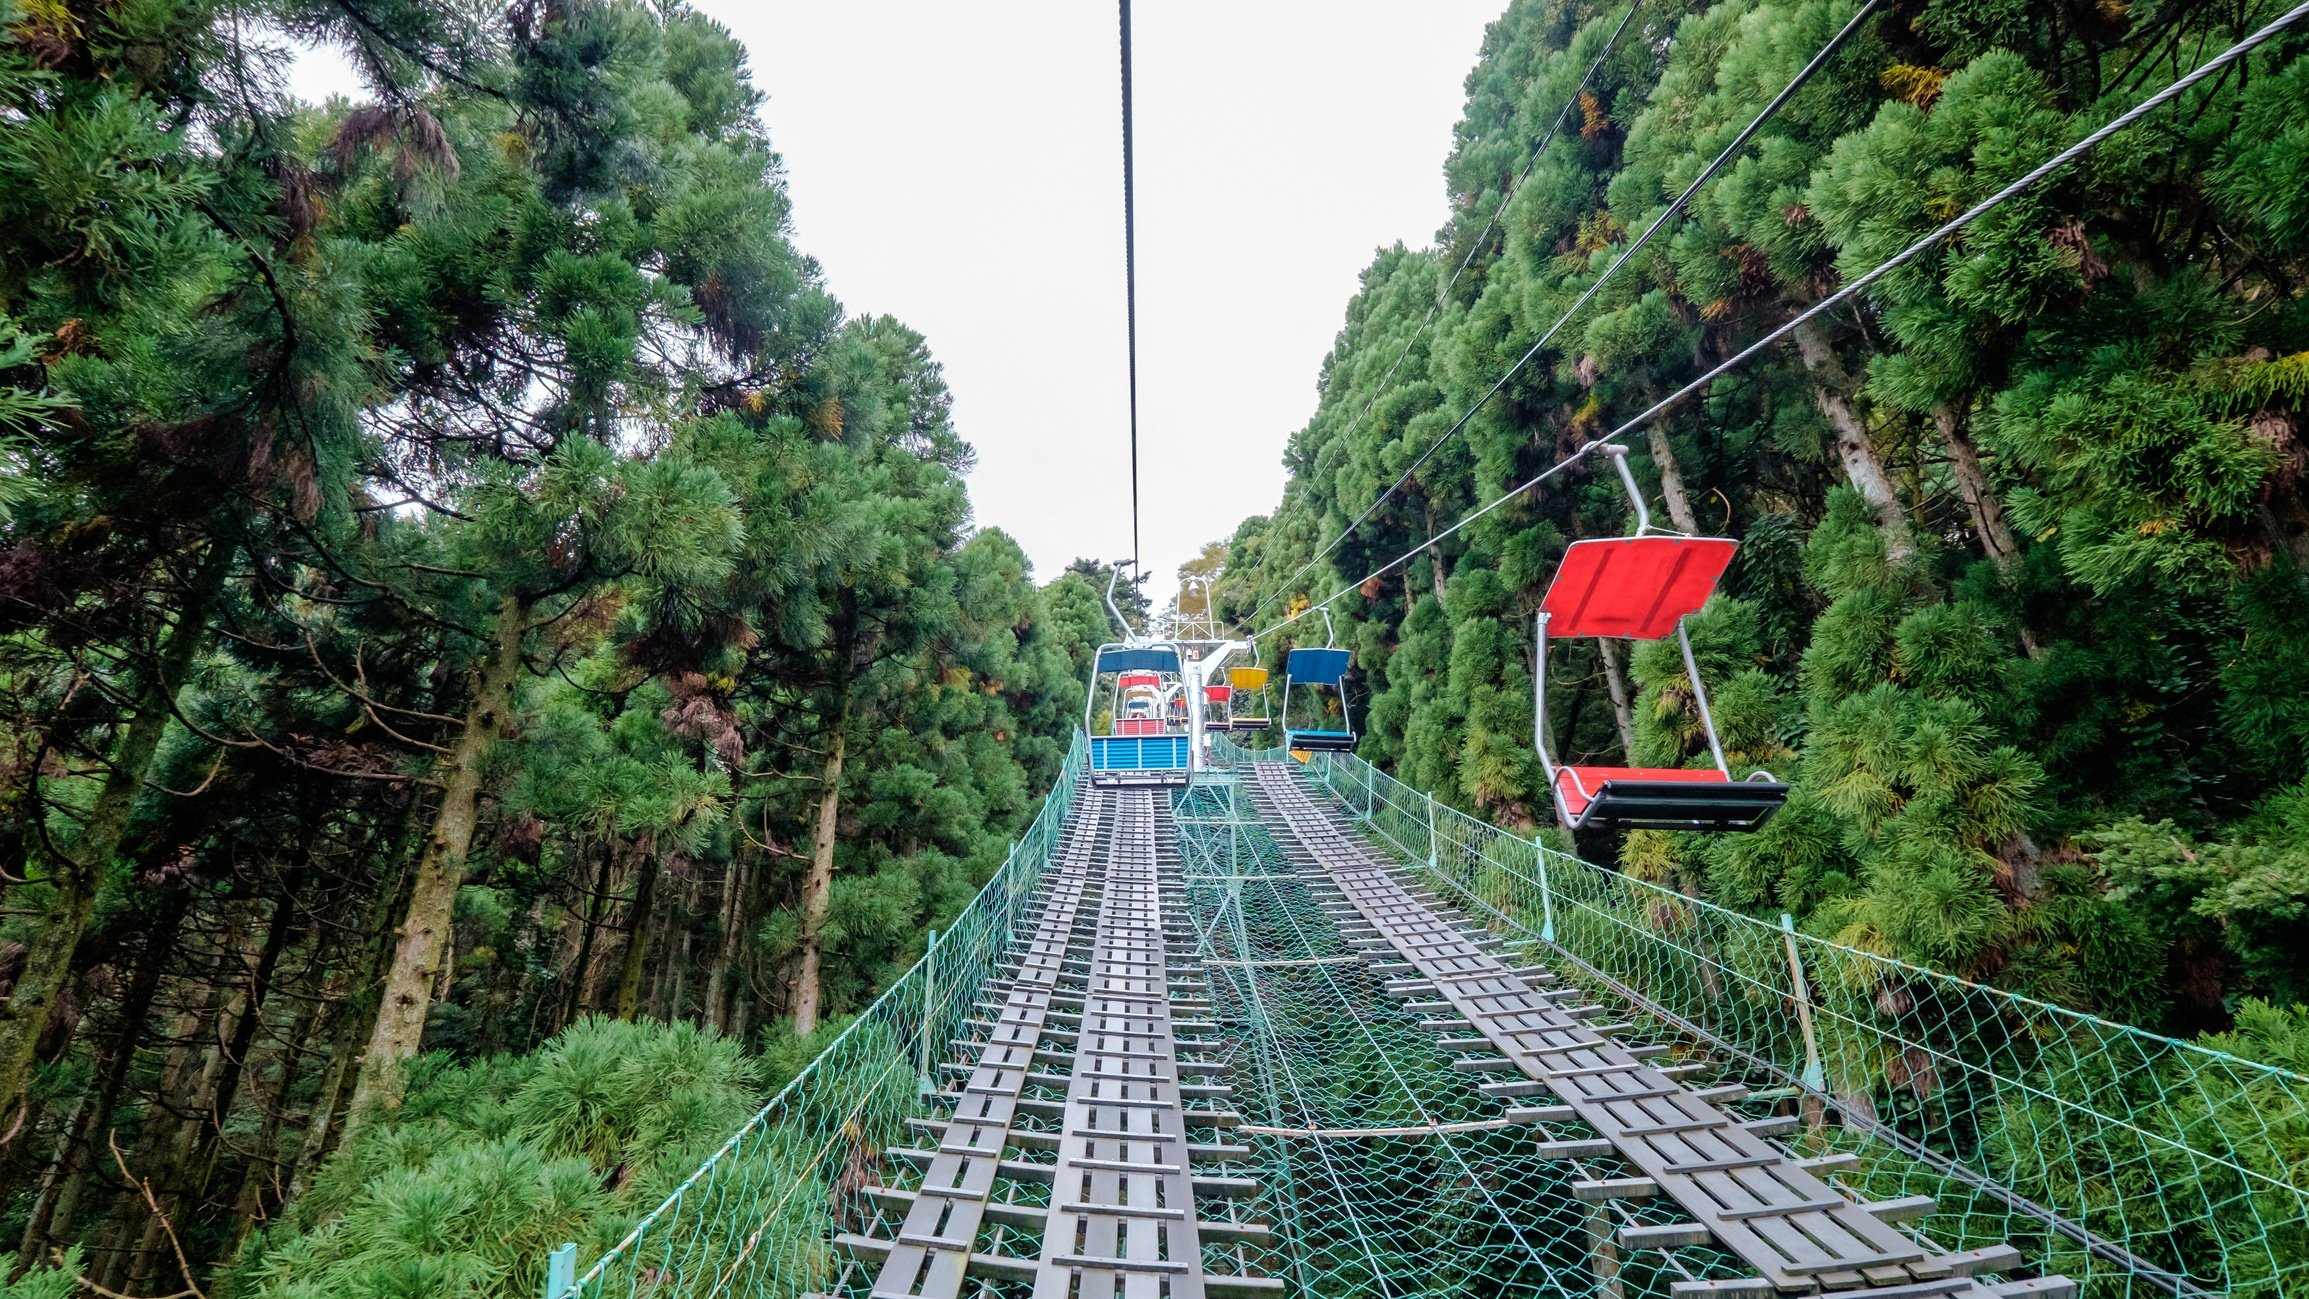 Going on a chair lift up towards Mount. Takao, Tokyo flanked by tall green pine trees.